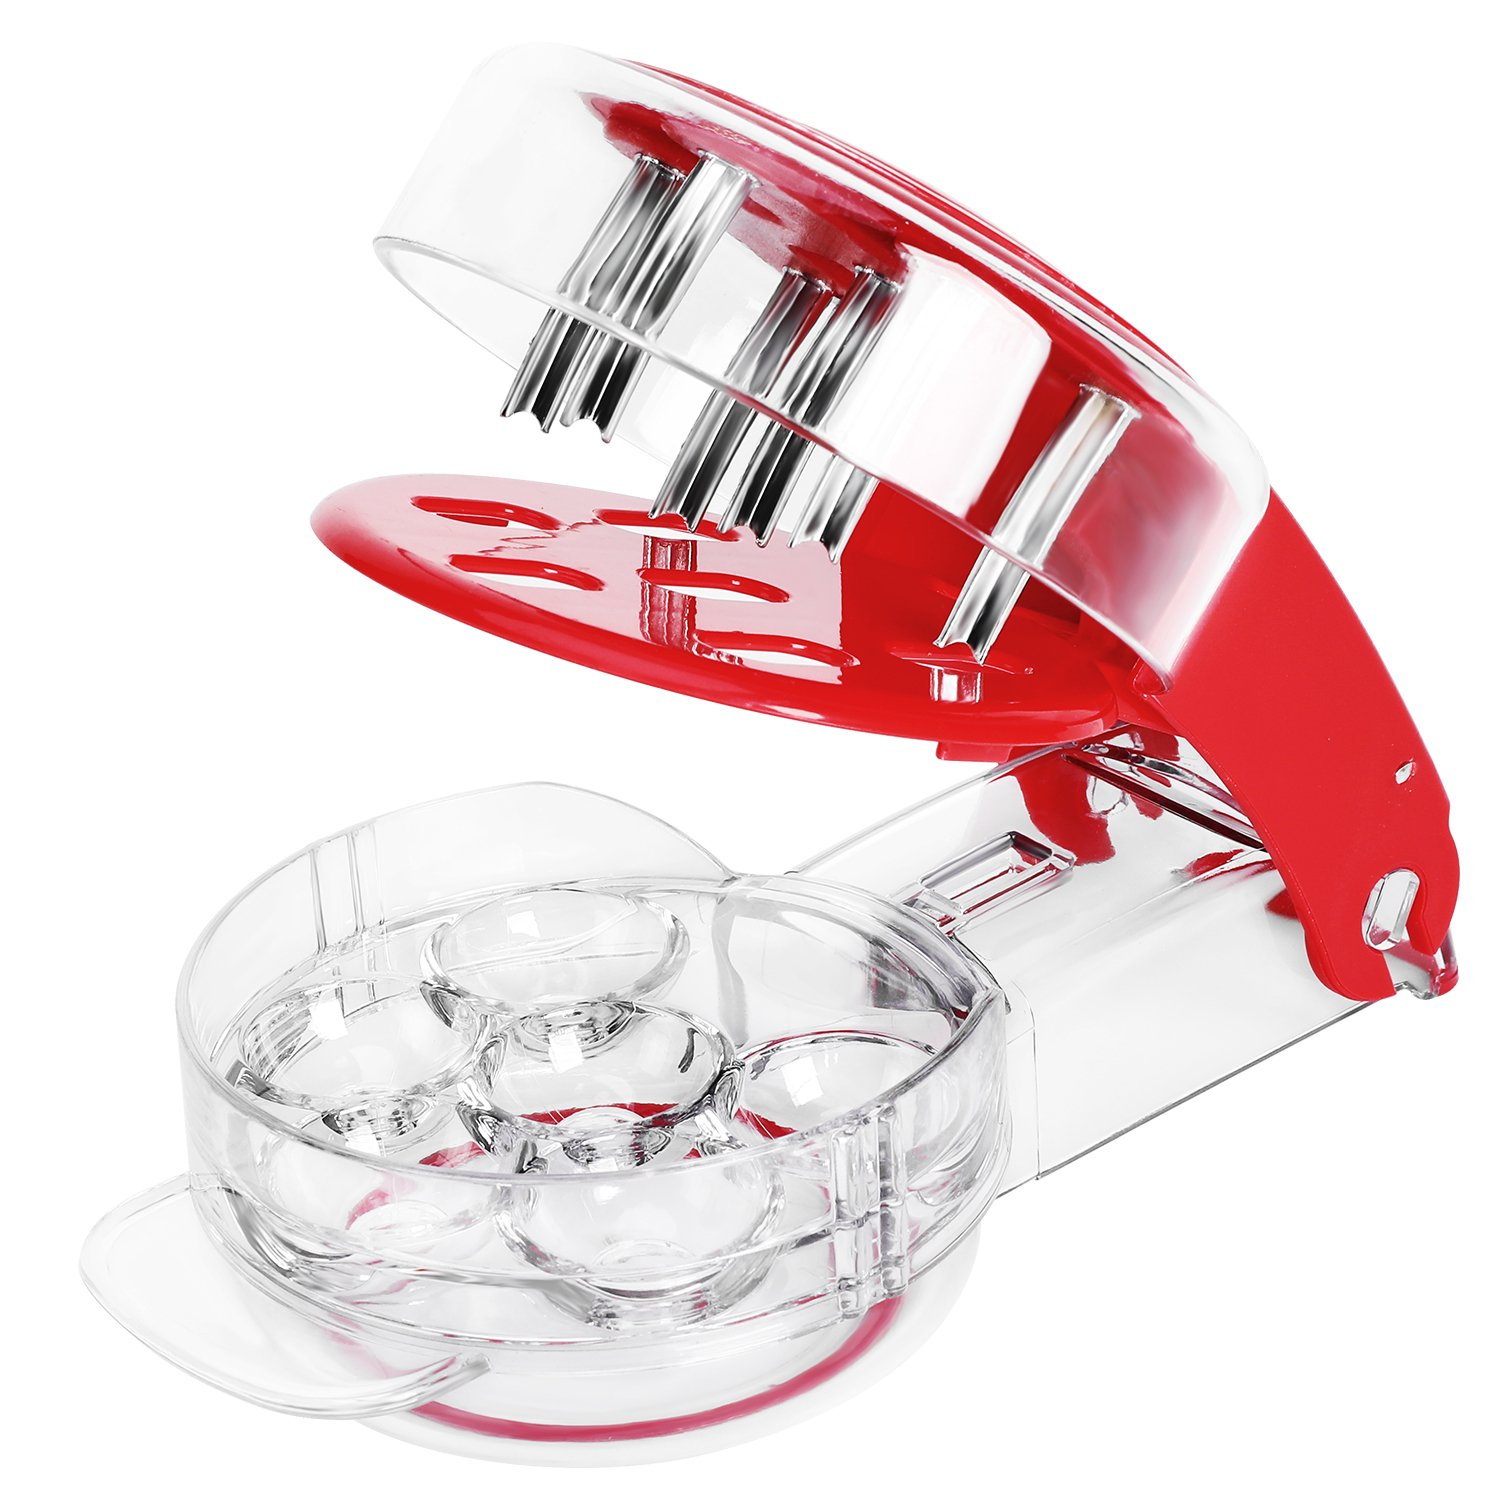 Ordekcity Cherry Pitter, Cherrystone Remover 6 Cherries for Juicing Kitchen Gadgets Geson